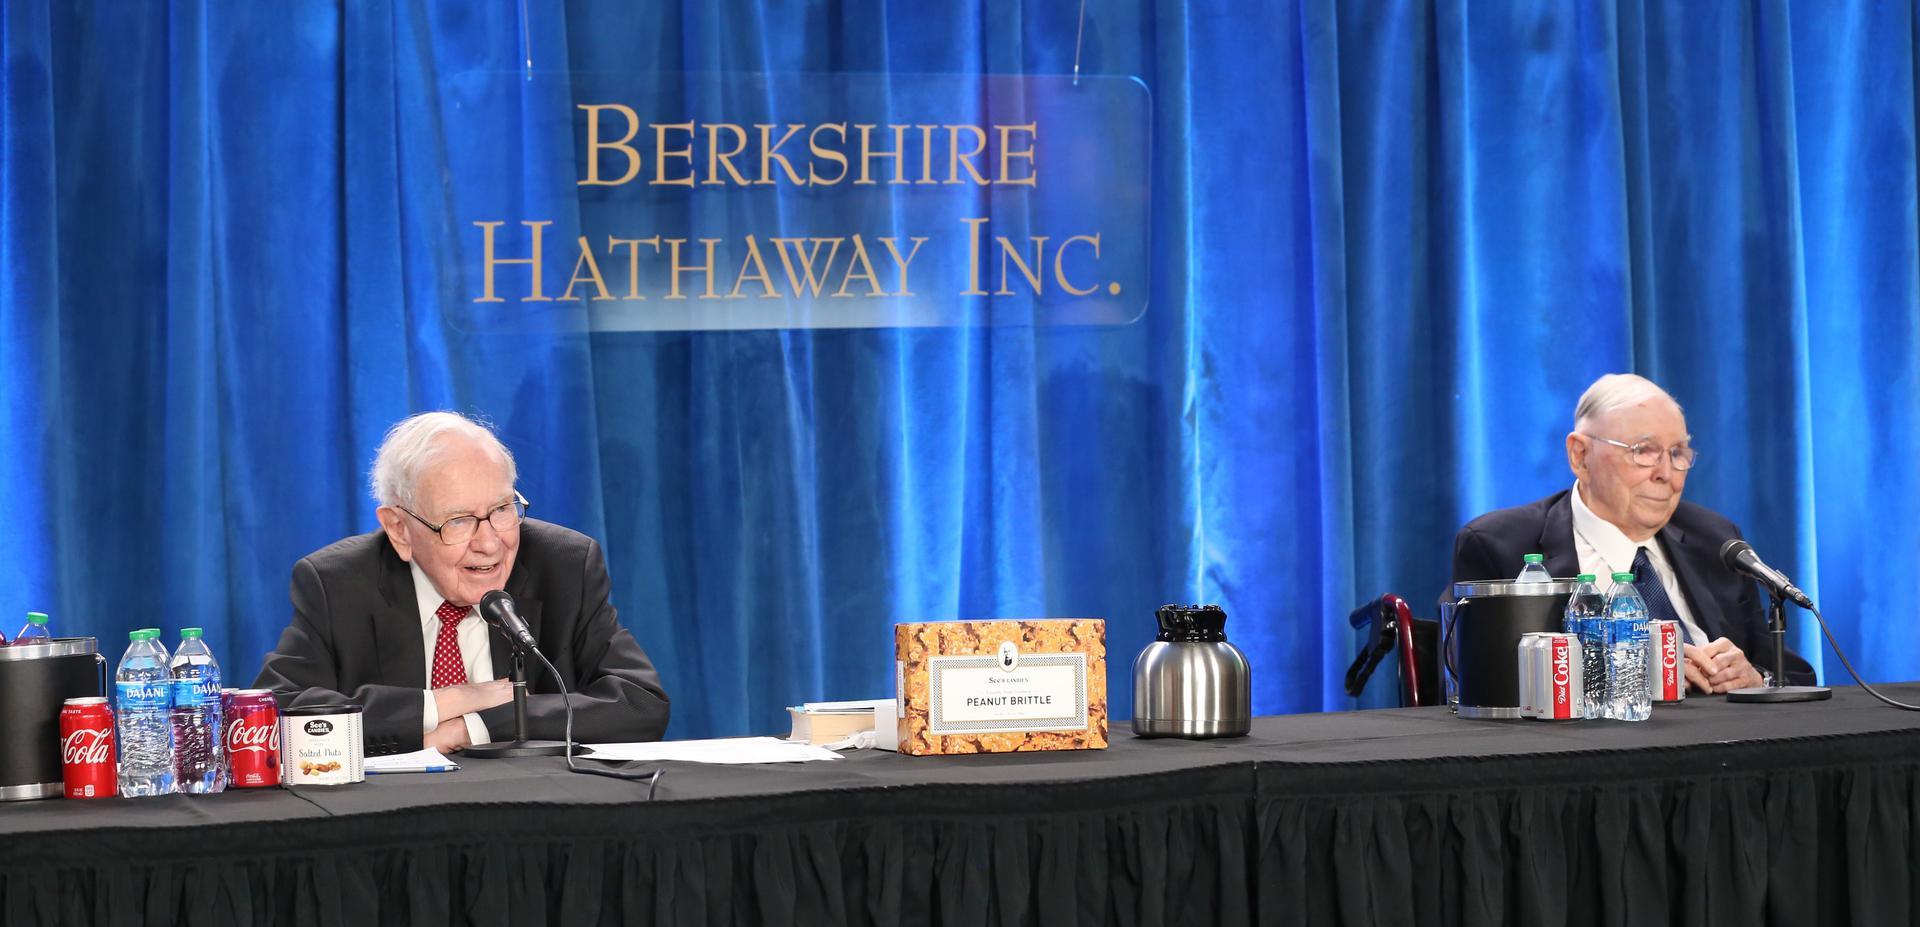 Warren Buffett and Charlie Munger at the 2021 Berkshire Hathaway annual meeting on May 1, 2021 in Los Angeles. Photo: Gerard Miller | CNBC